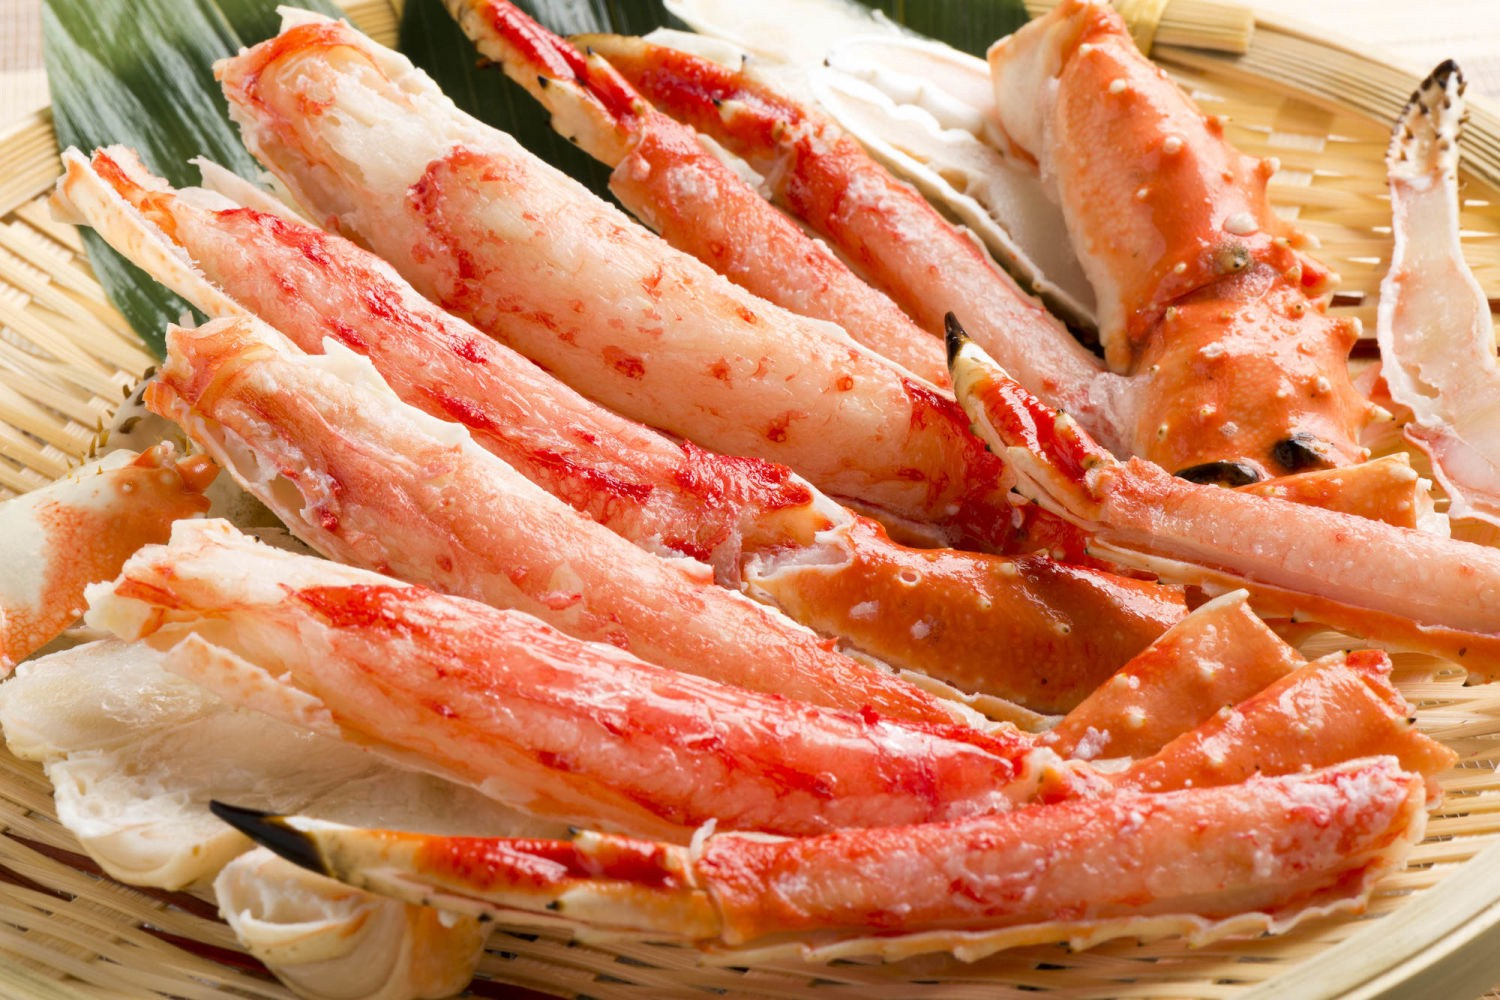 Crab Buffet Eat To Your Crab S Content: Buffet Under $40 In Tokyo